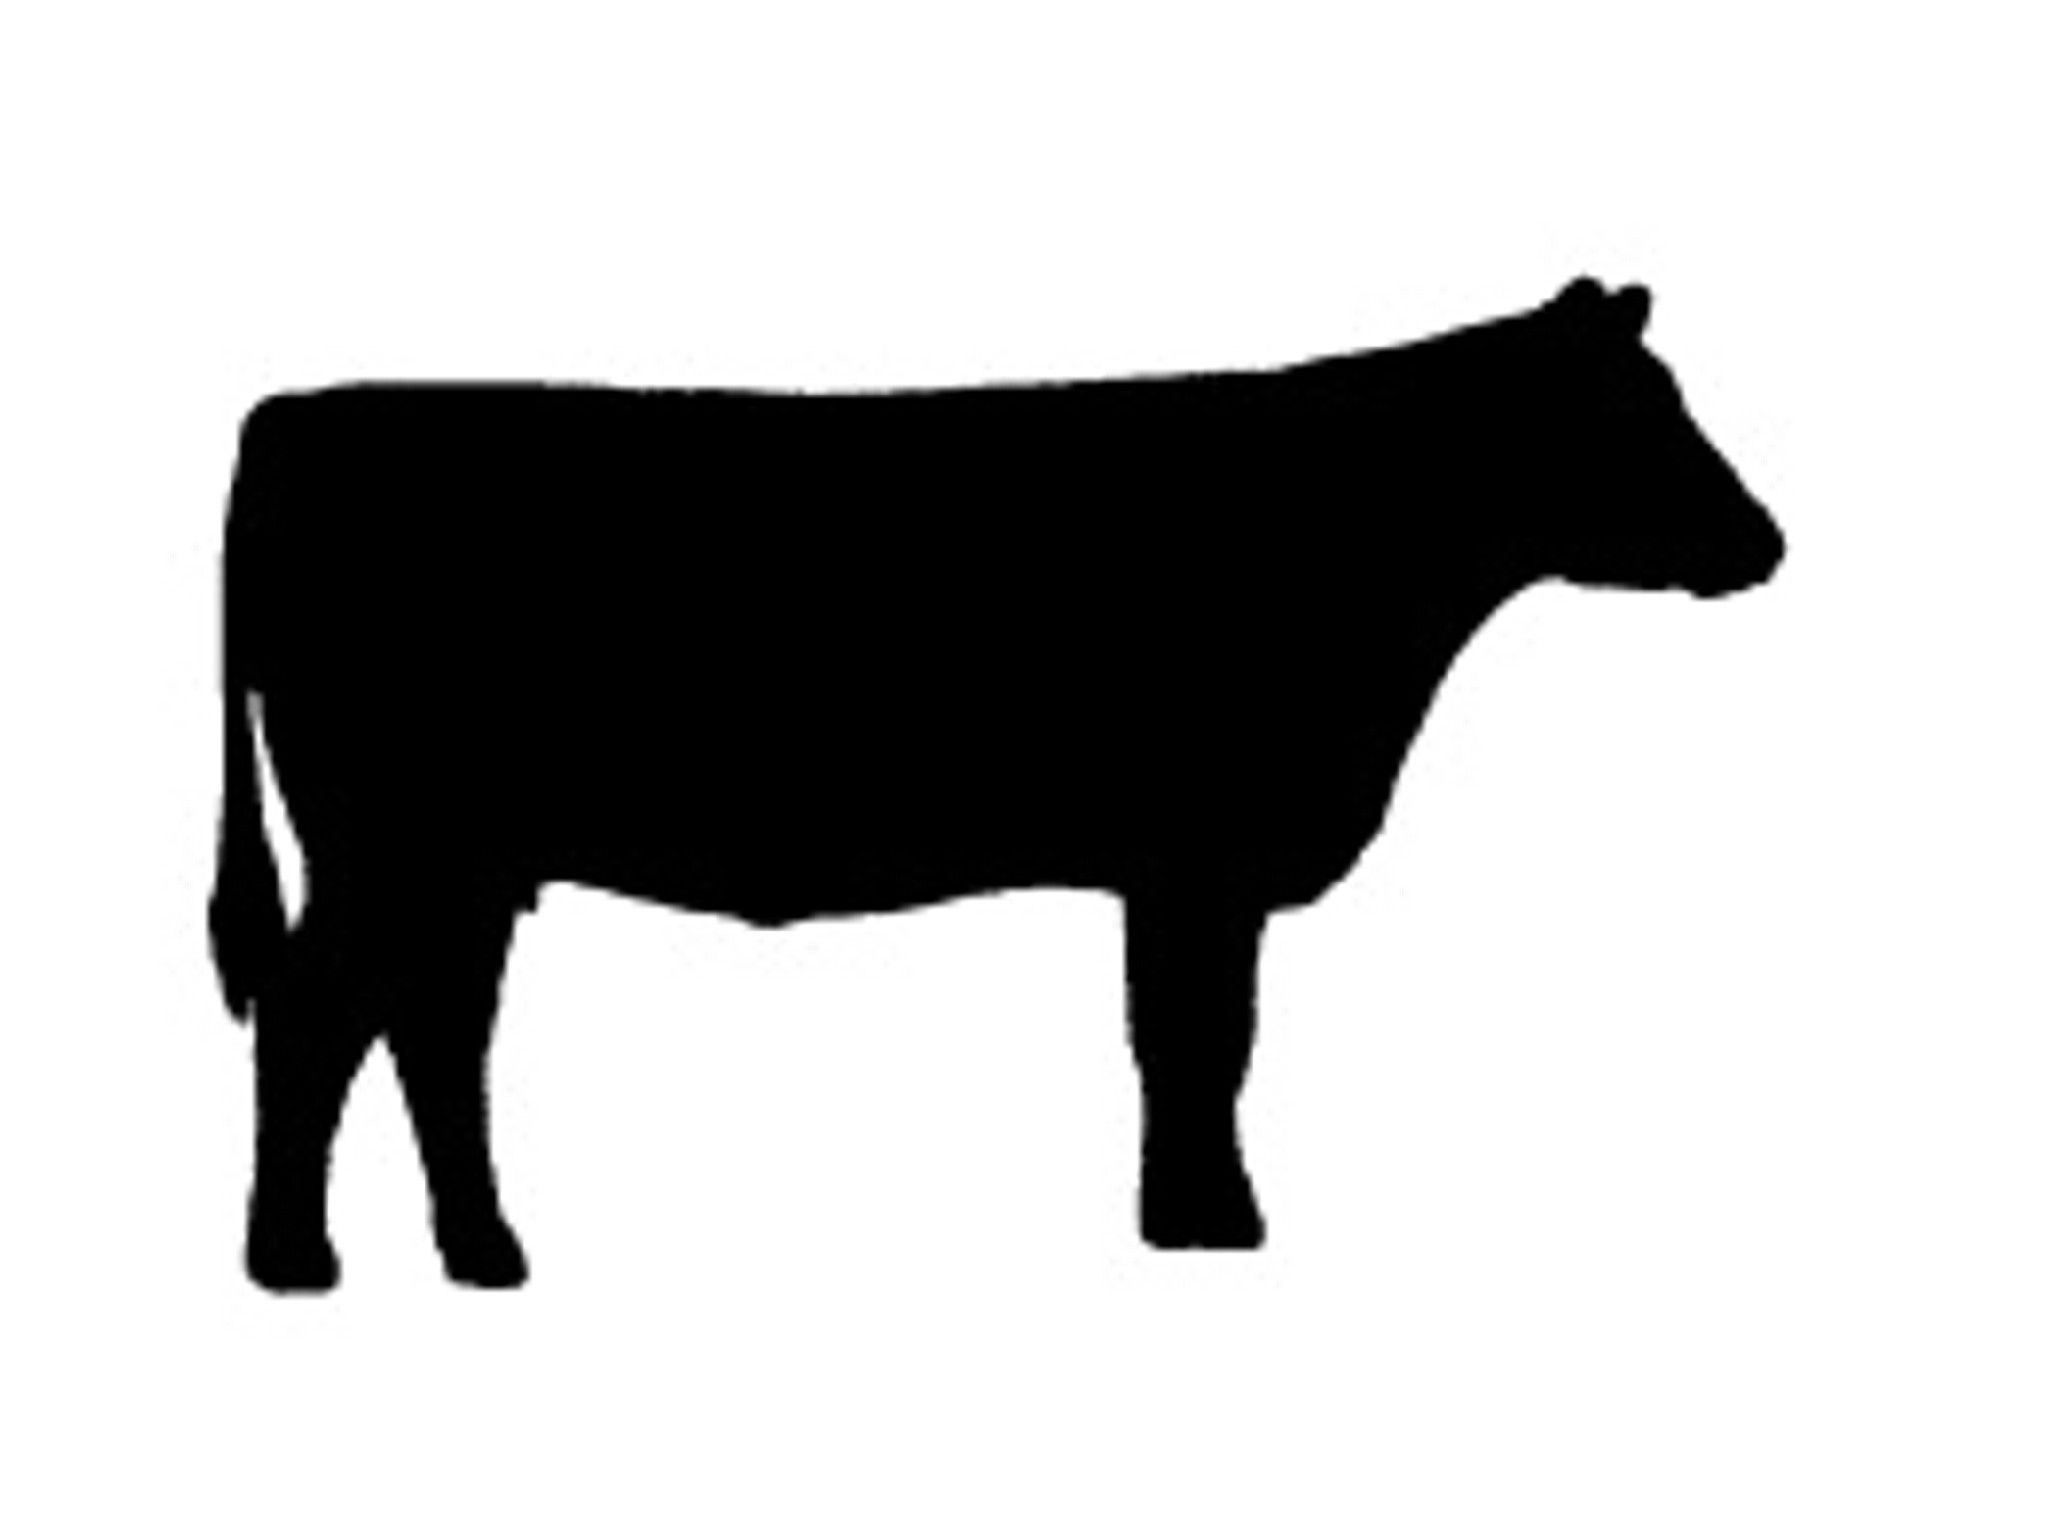 Cow Wall Stickers Angus Cow Silhouette At Getdrawings Com Free For